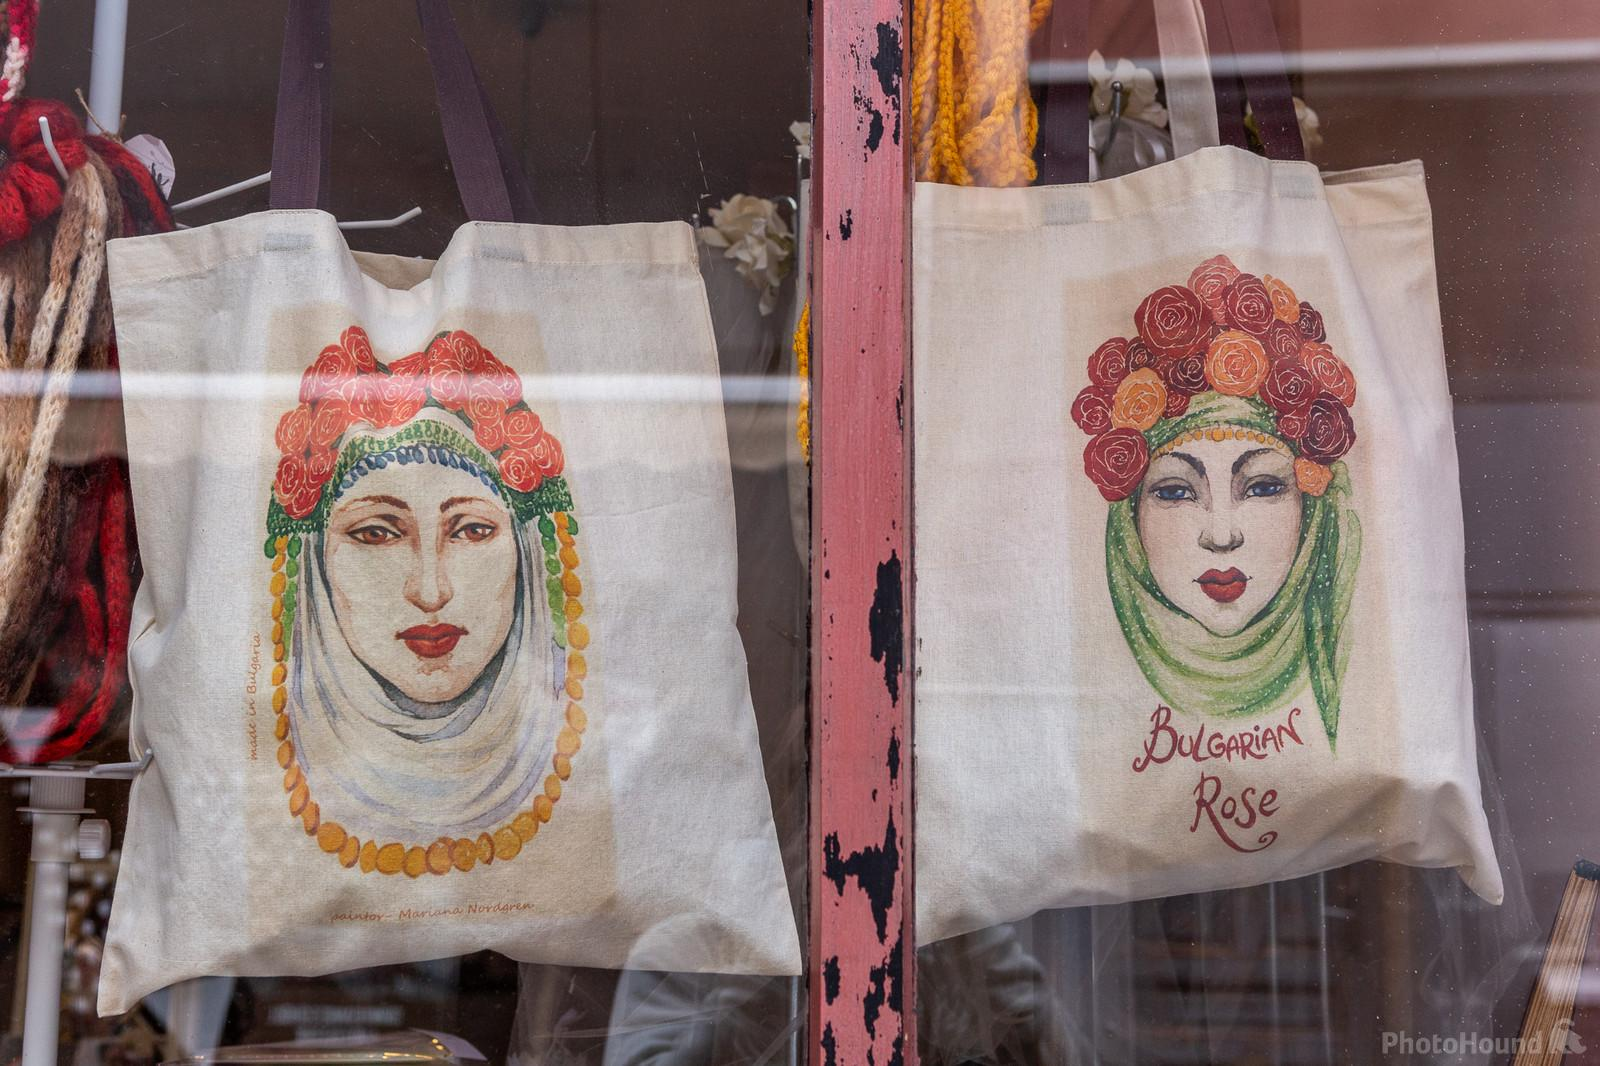 Shop at Kapana district in Plovdiv selling goods with traditional motifs